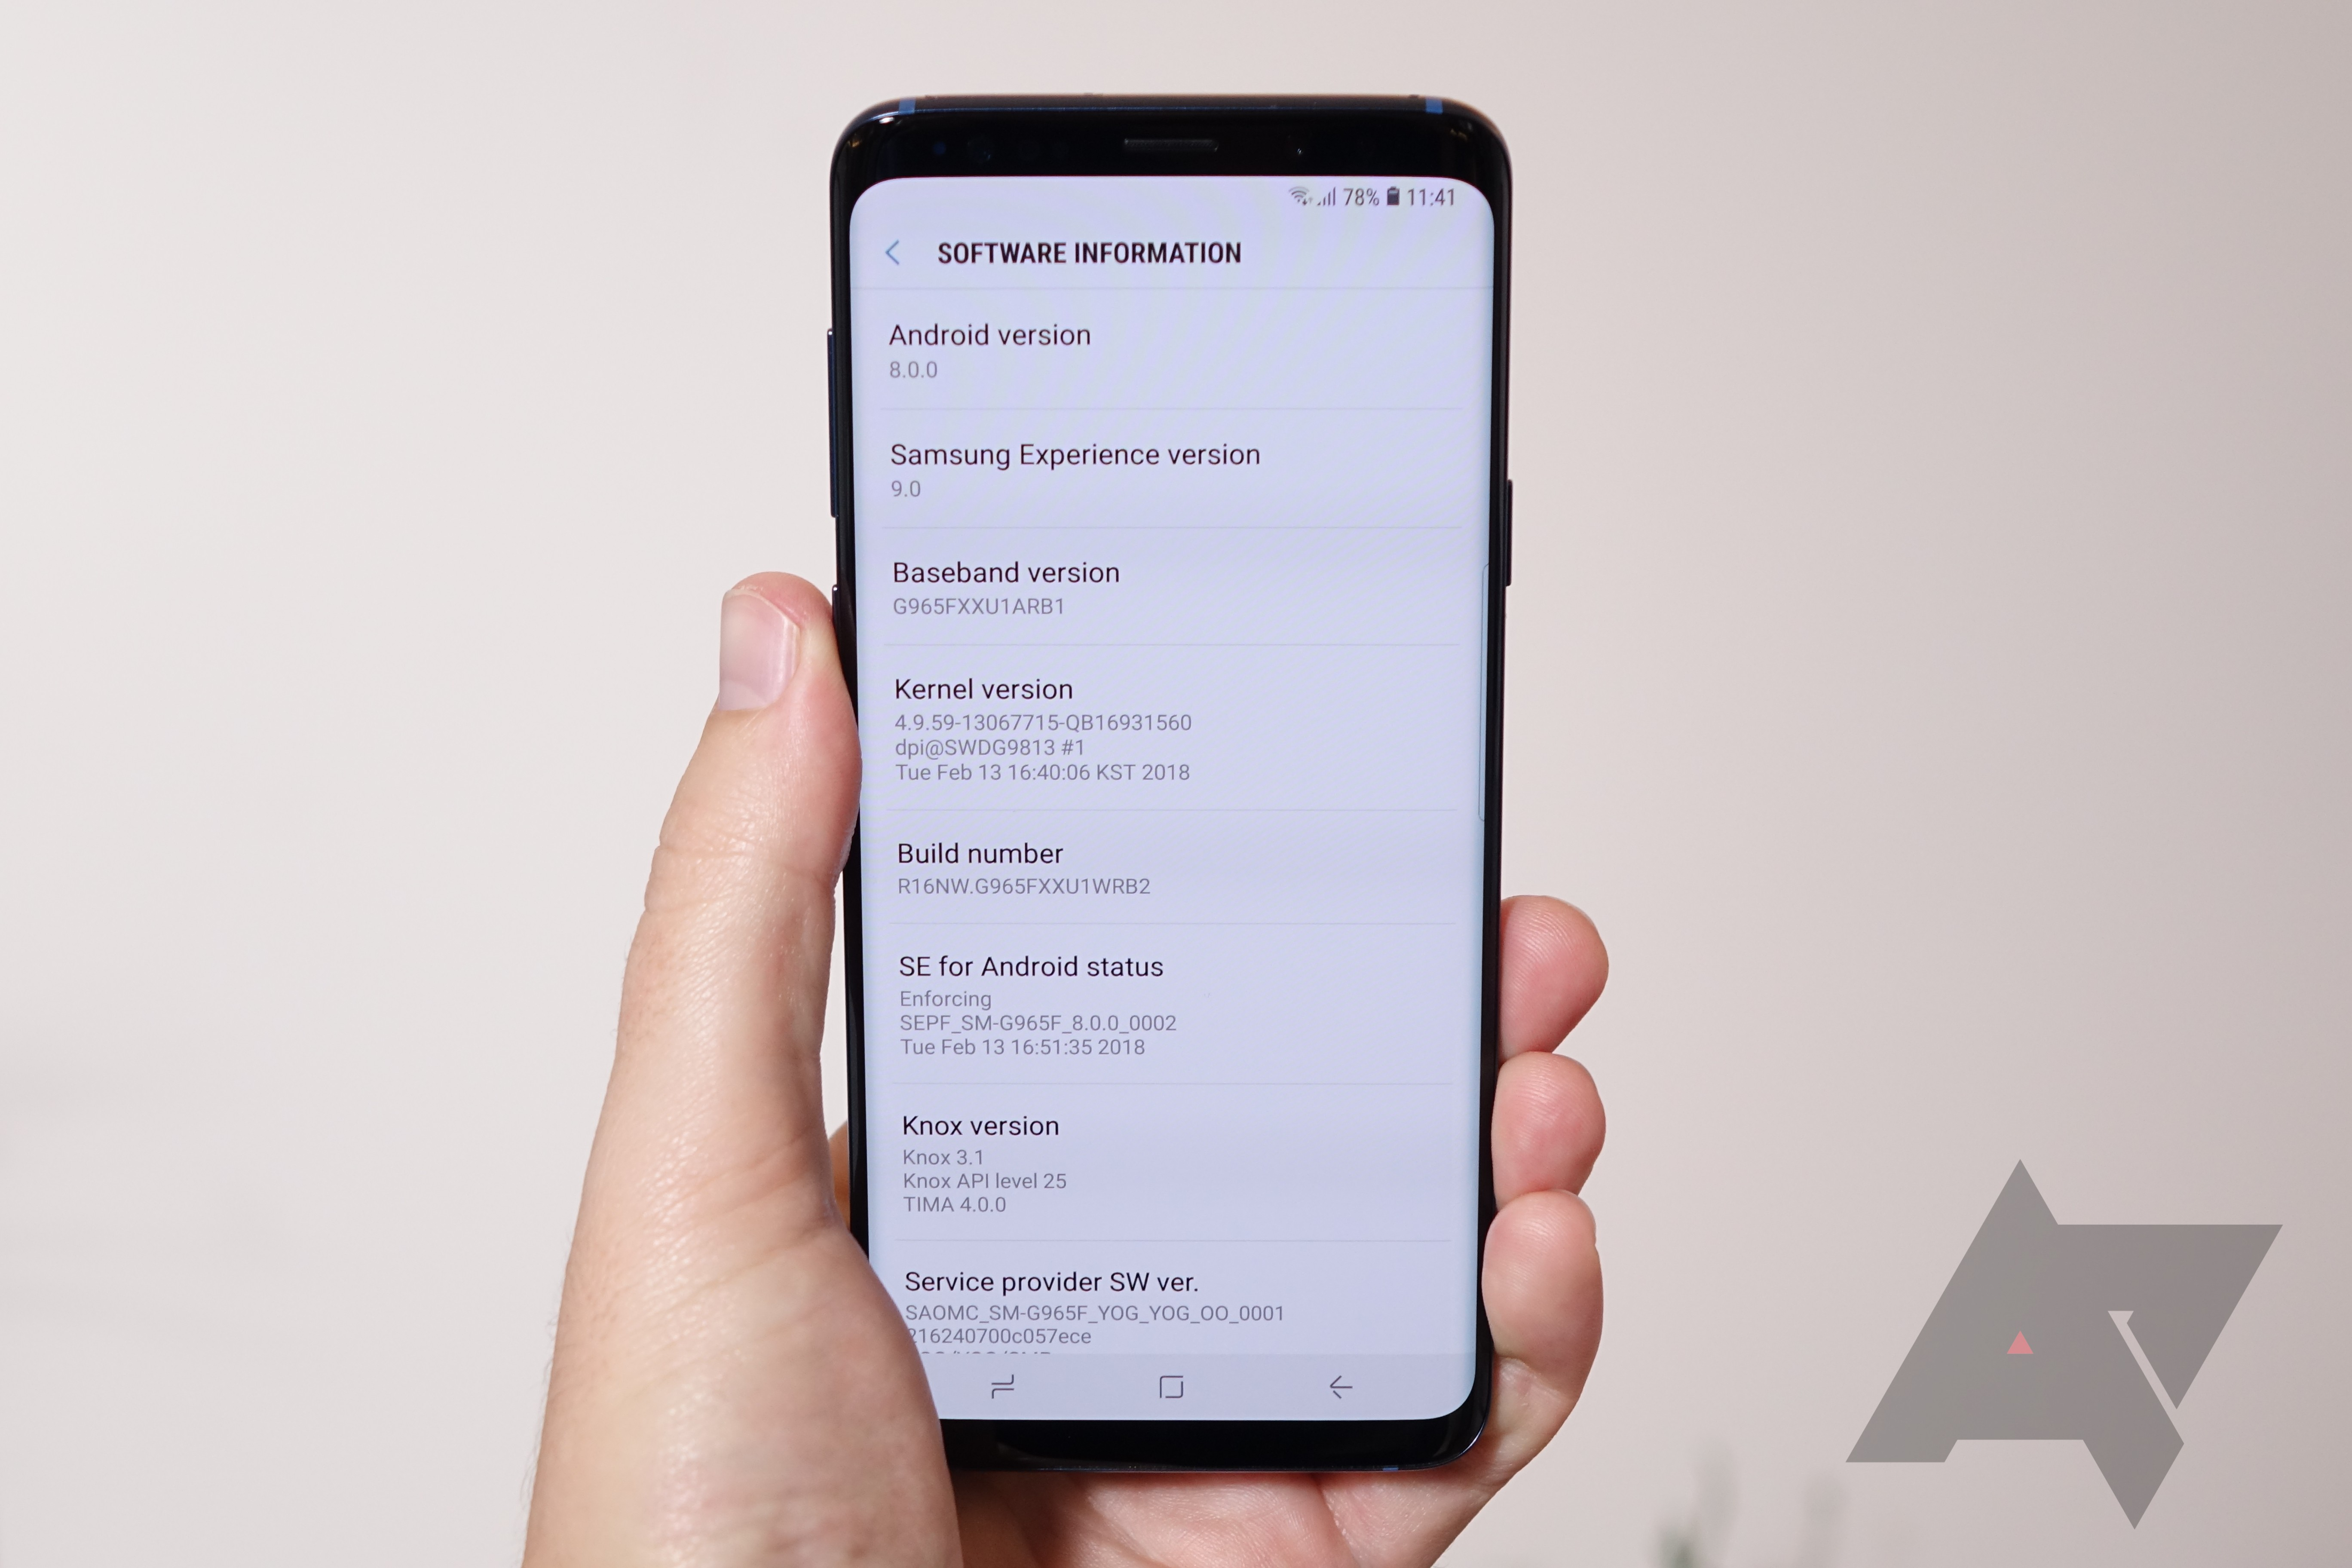 Galaxy S9 and S9+ hands-on: More of the Samesung